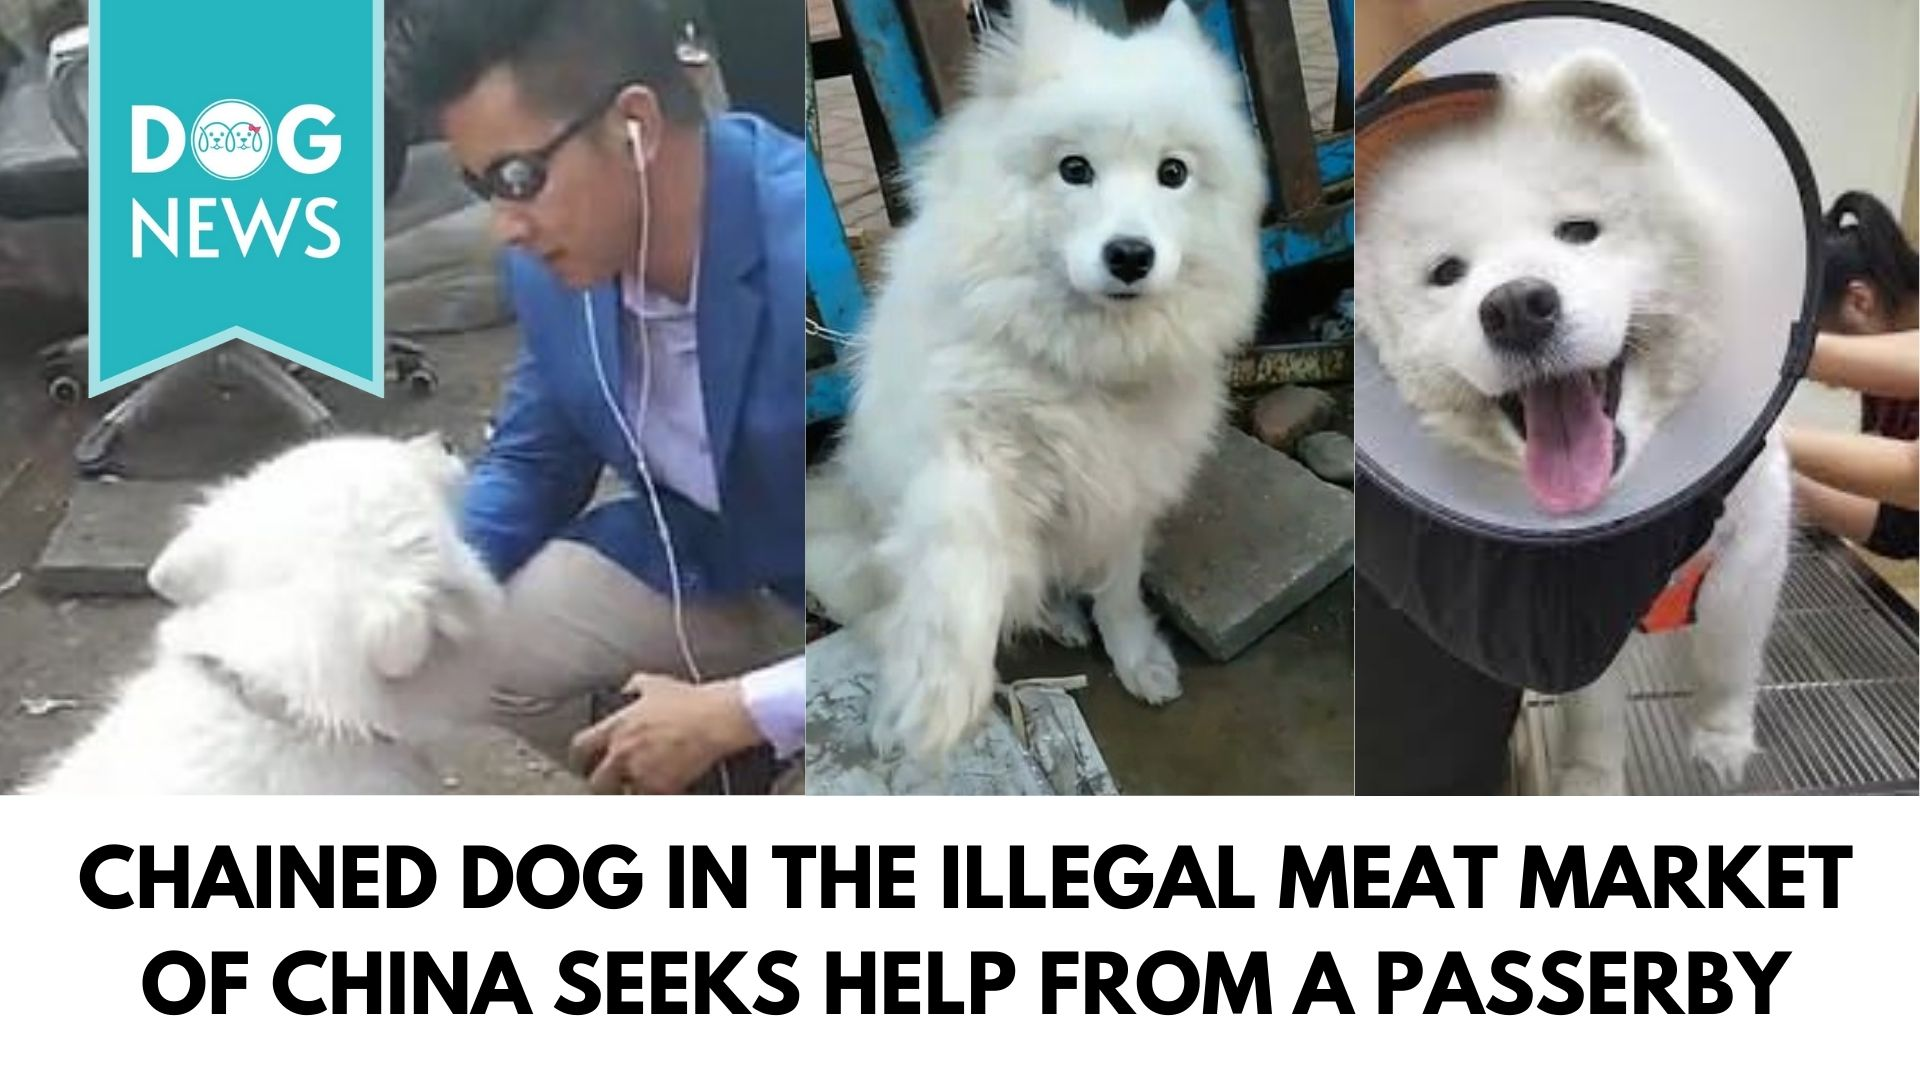 Chained dog in the illegal meat market of China seeks help from a passerby